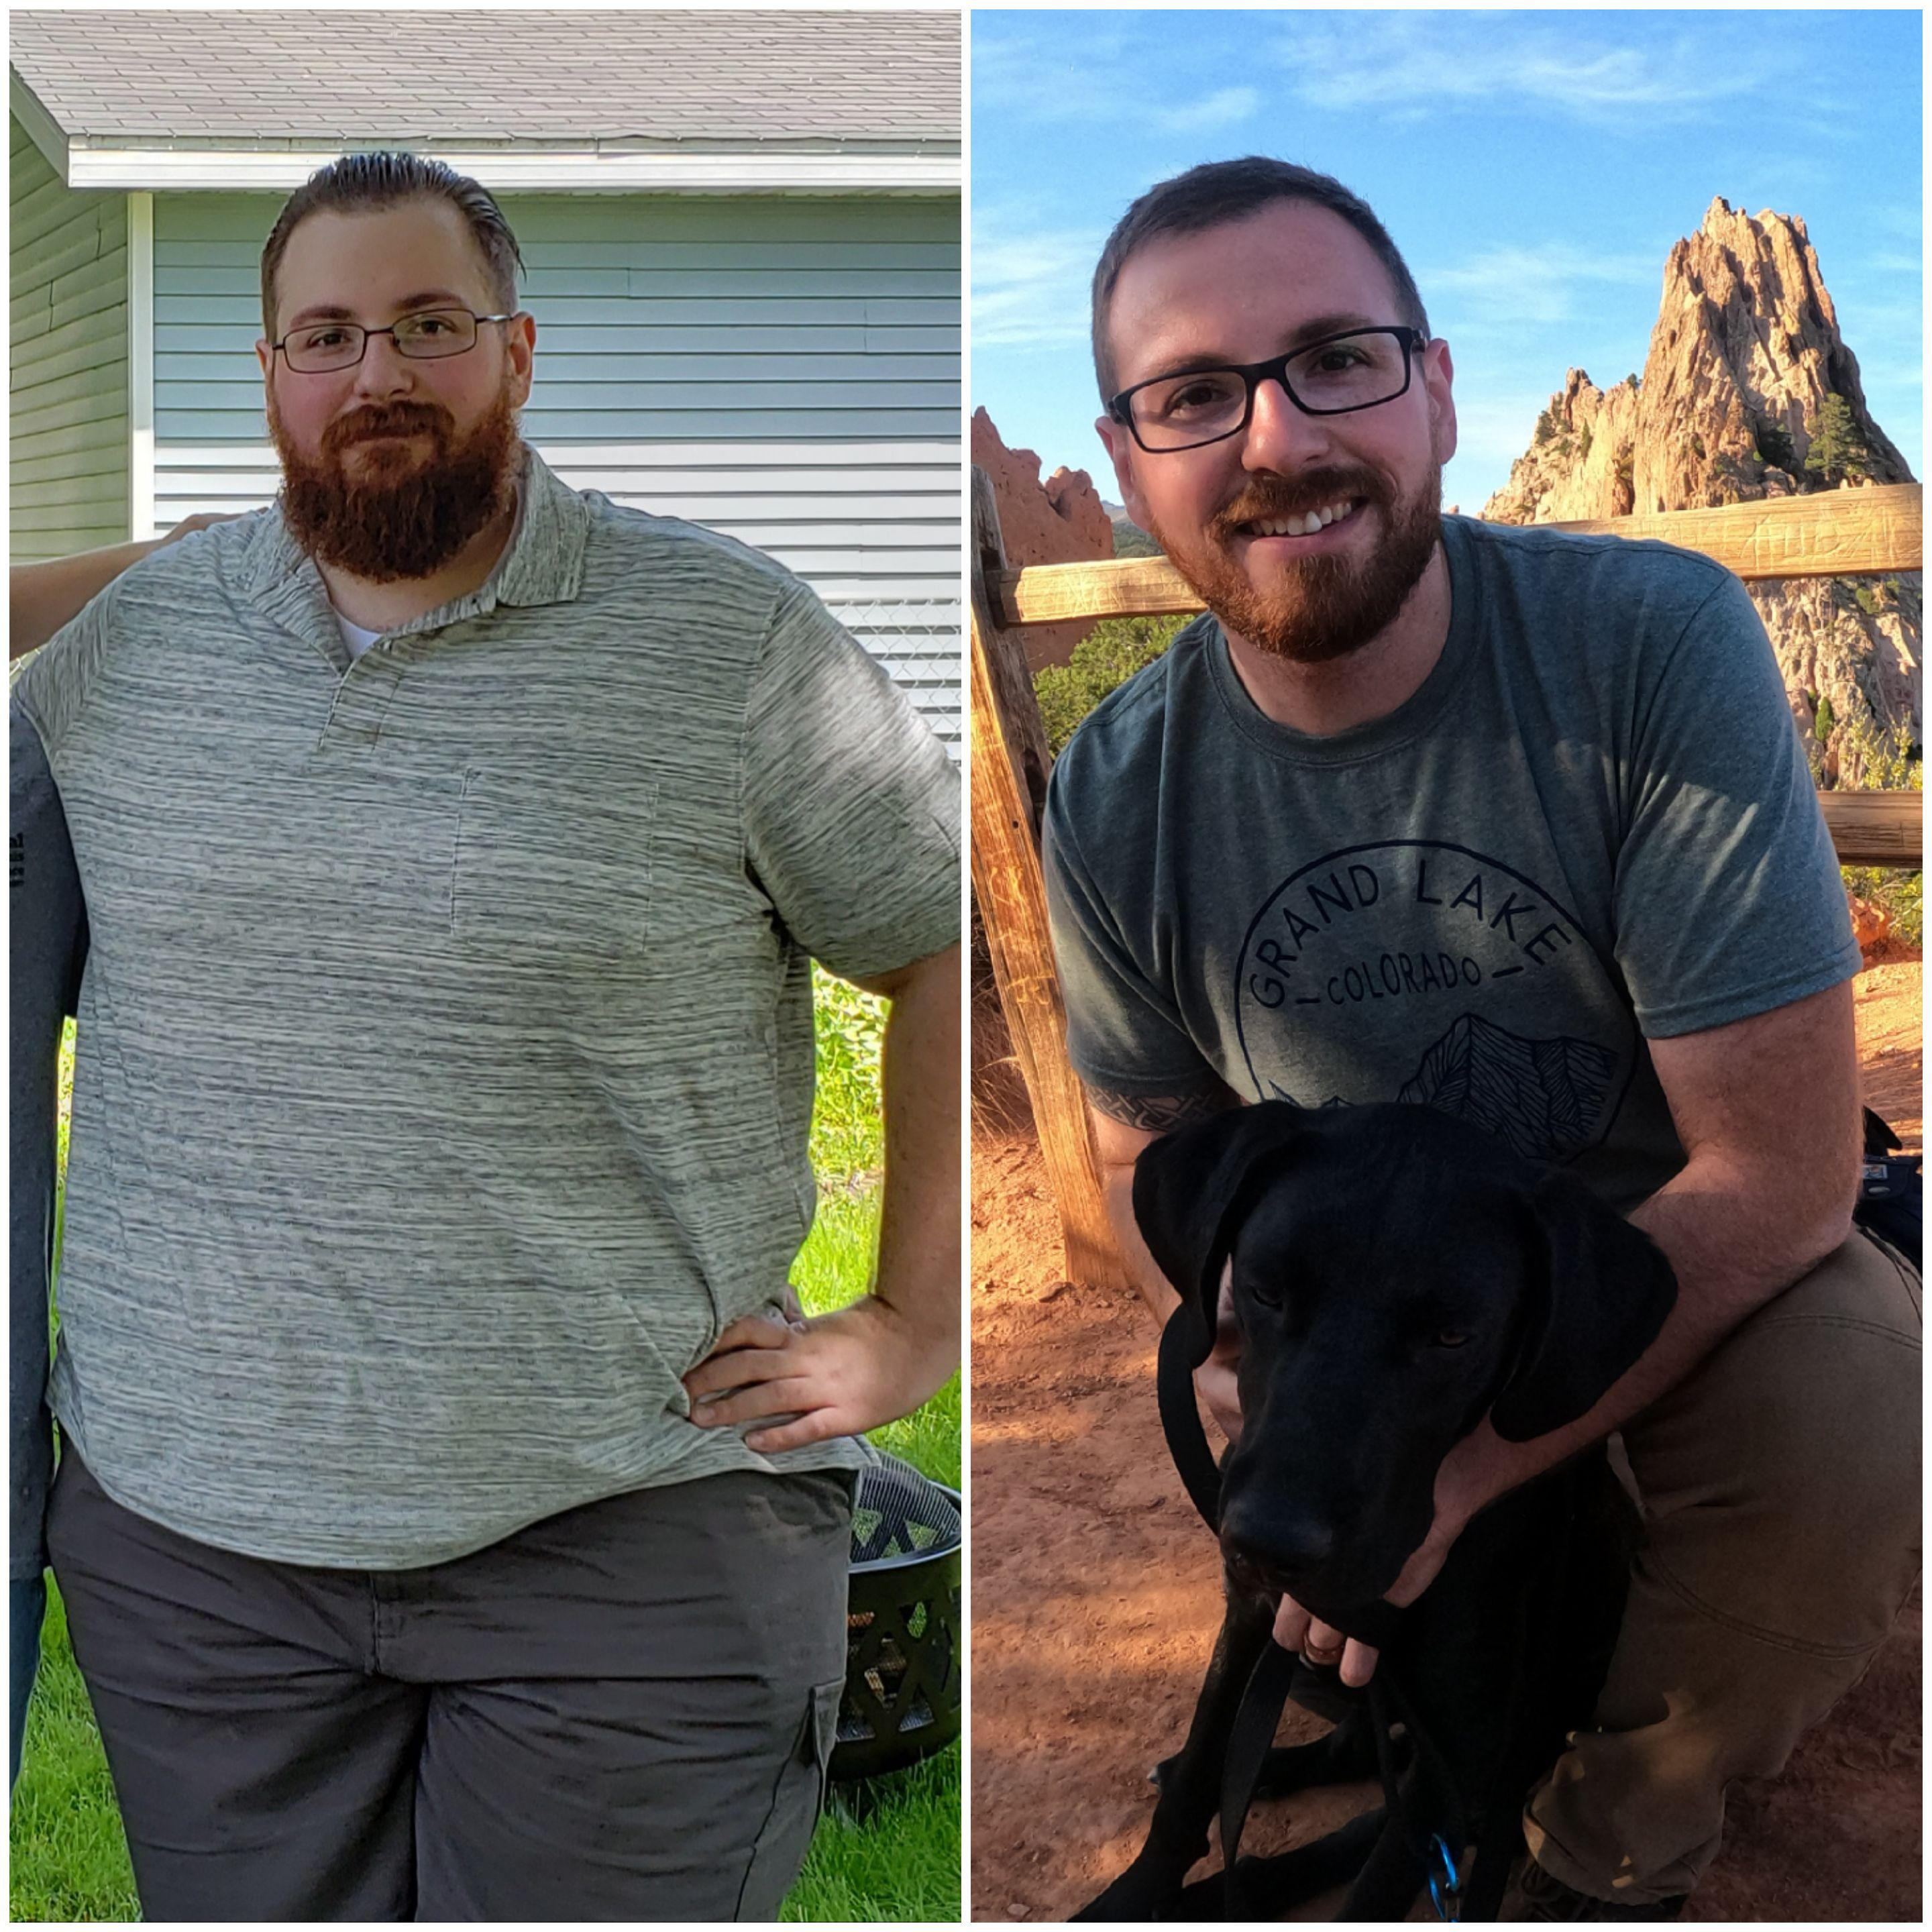 5 feet 11 Male 152 lbs Weight Loss Before and After 377 lbs to 225 lbs